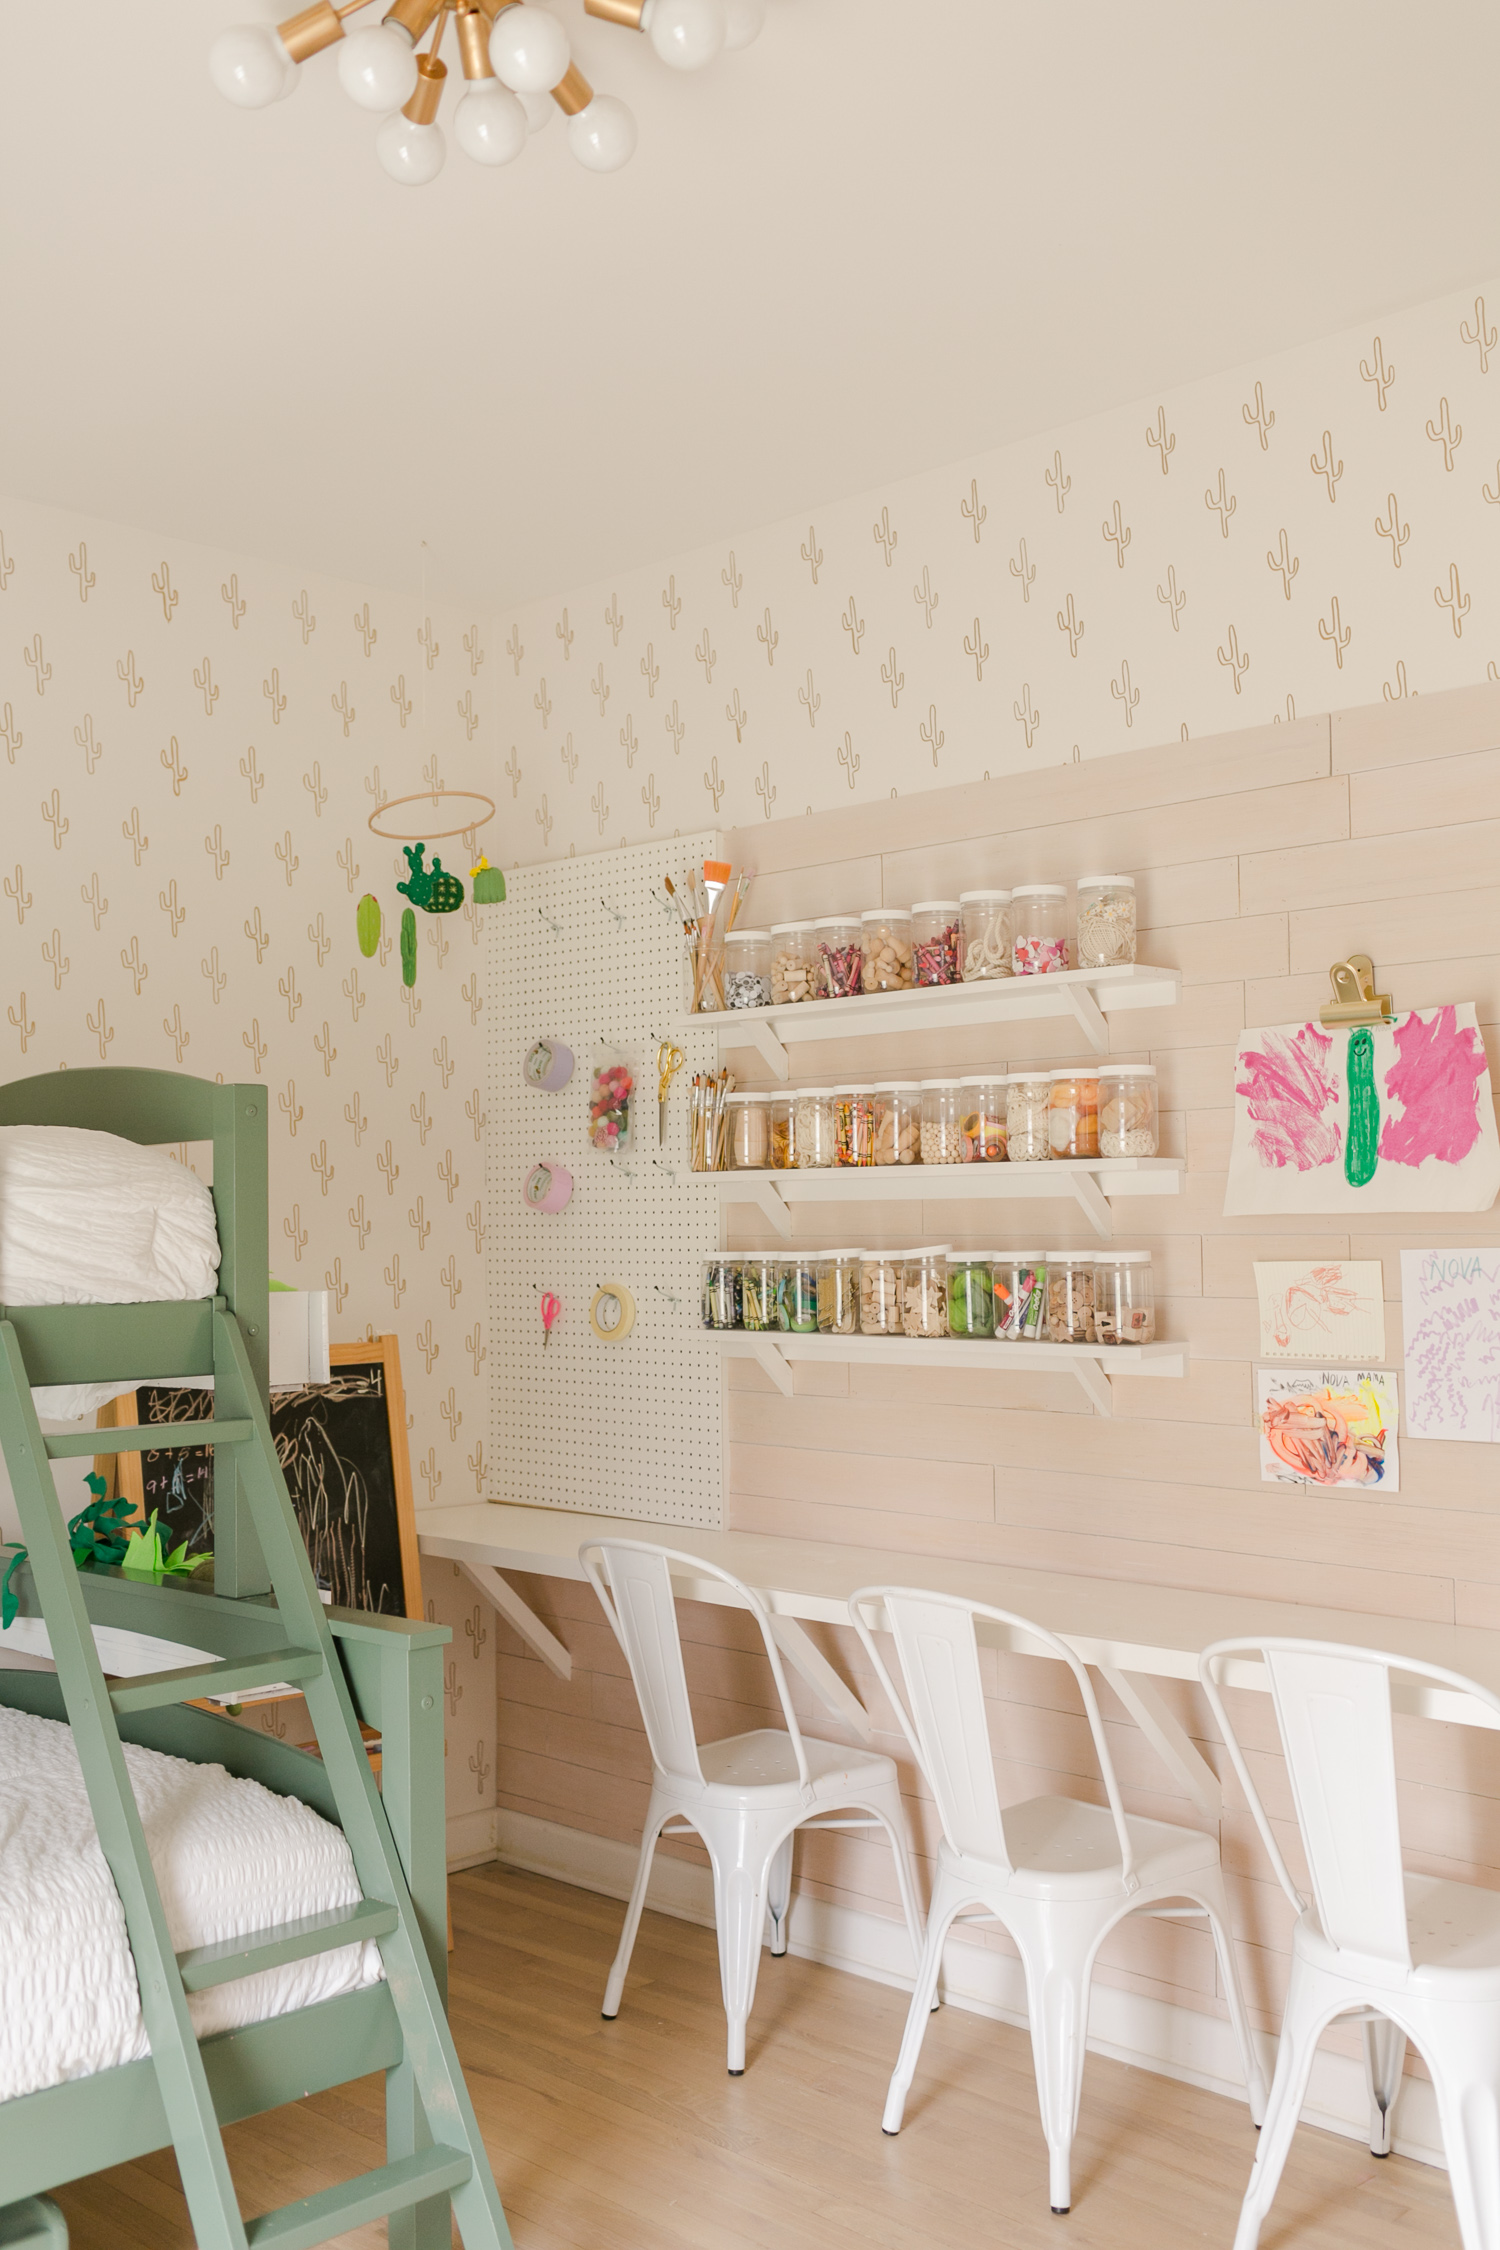 Kiddo Guest + Playroom Update